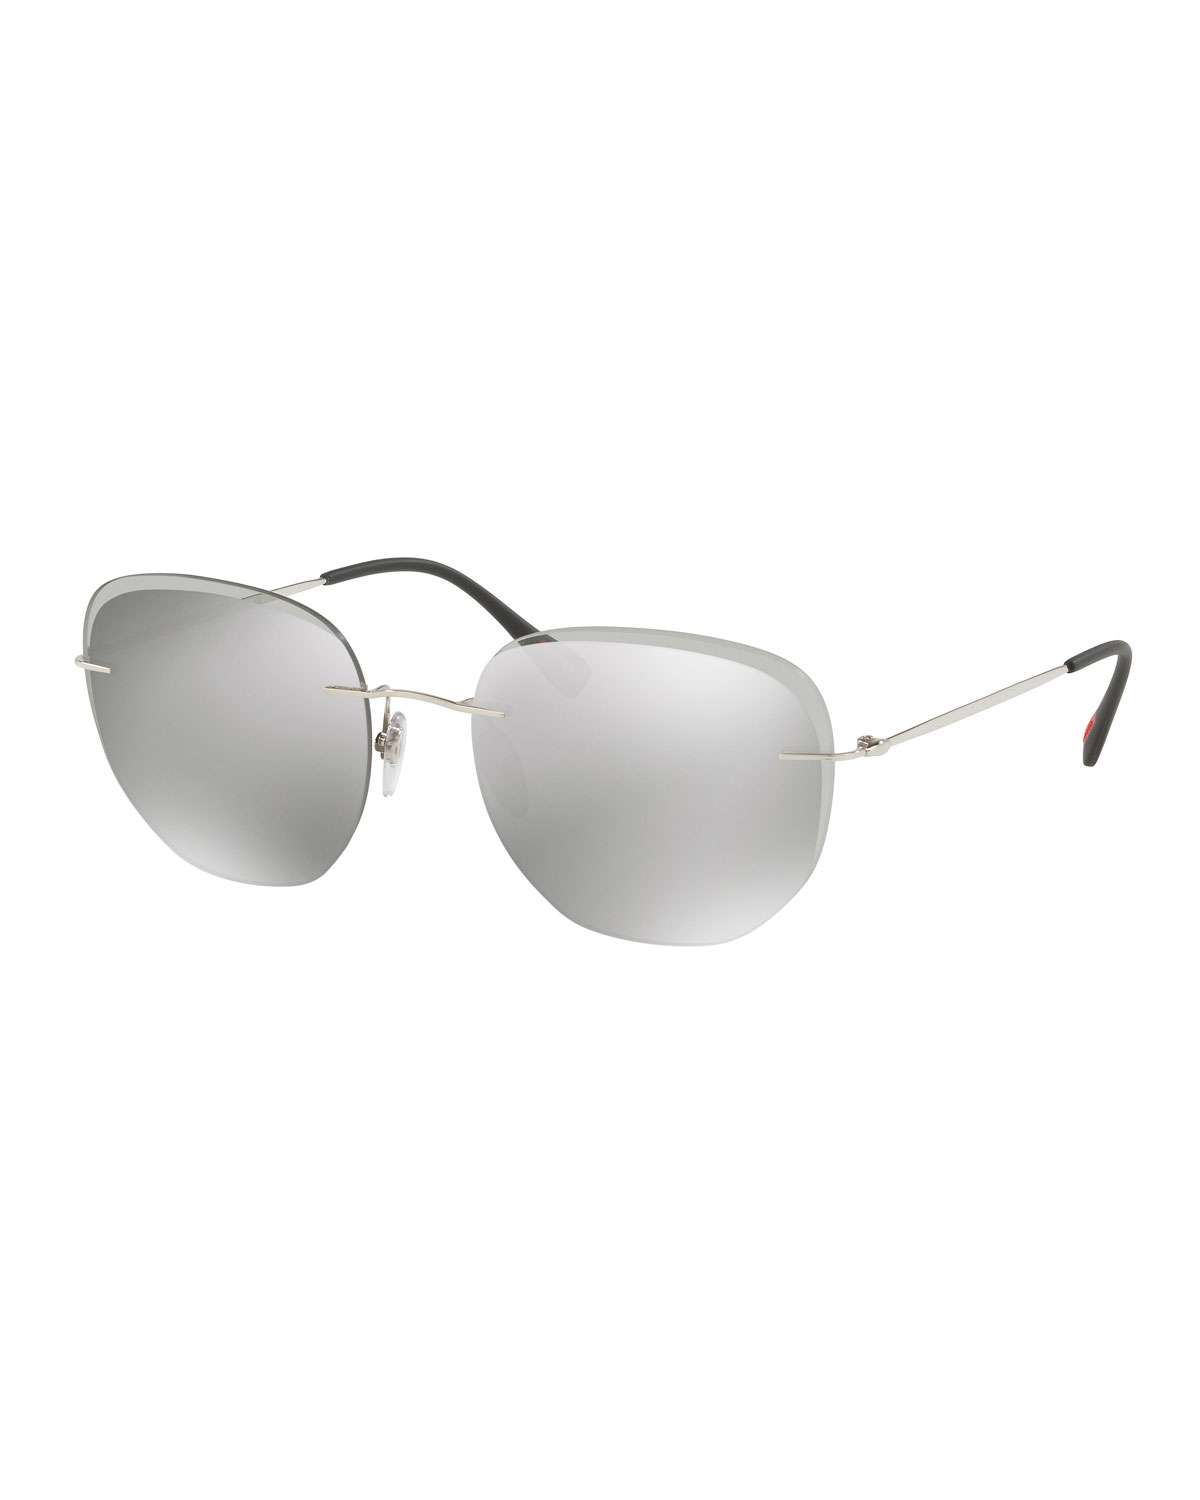 ec463a0d433 Prada Men s Rimless Square Sunglasses